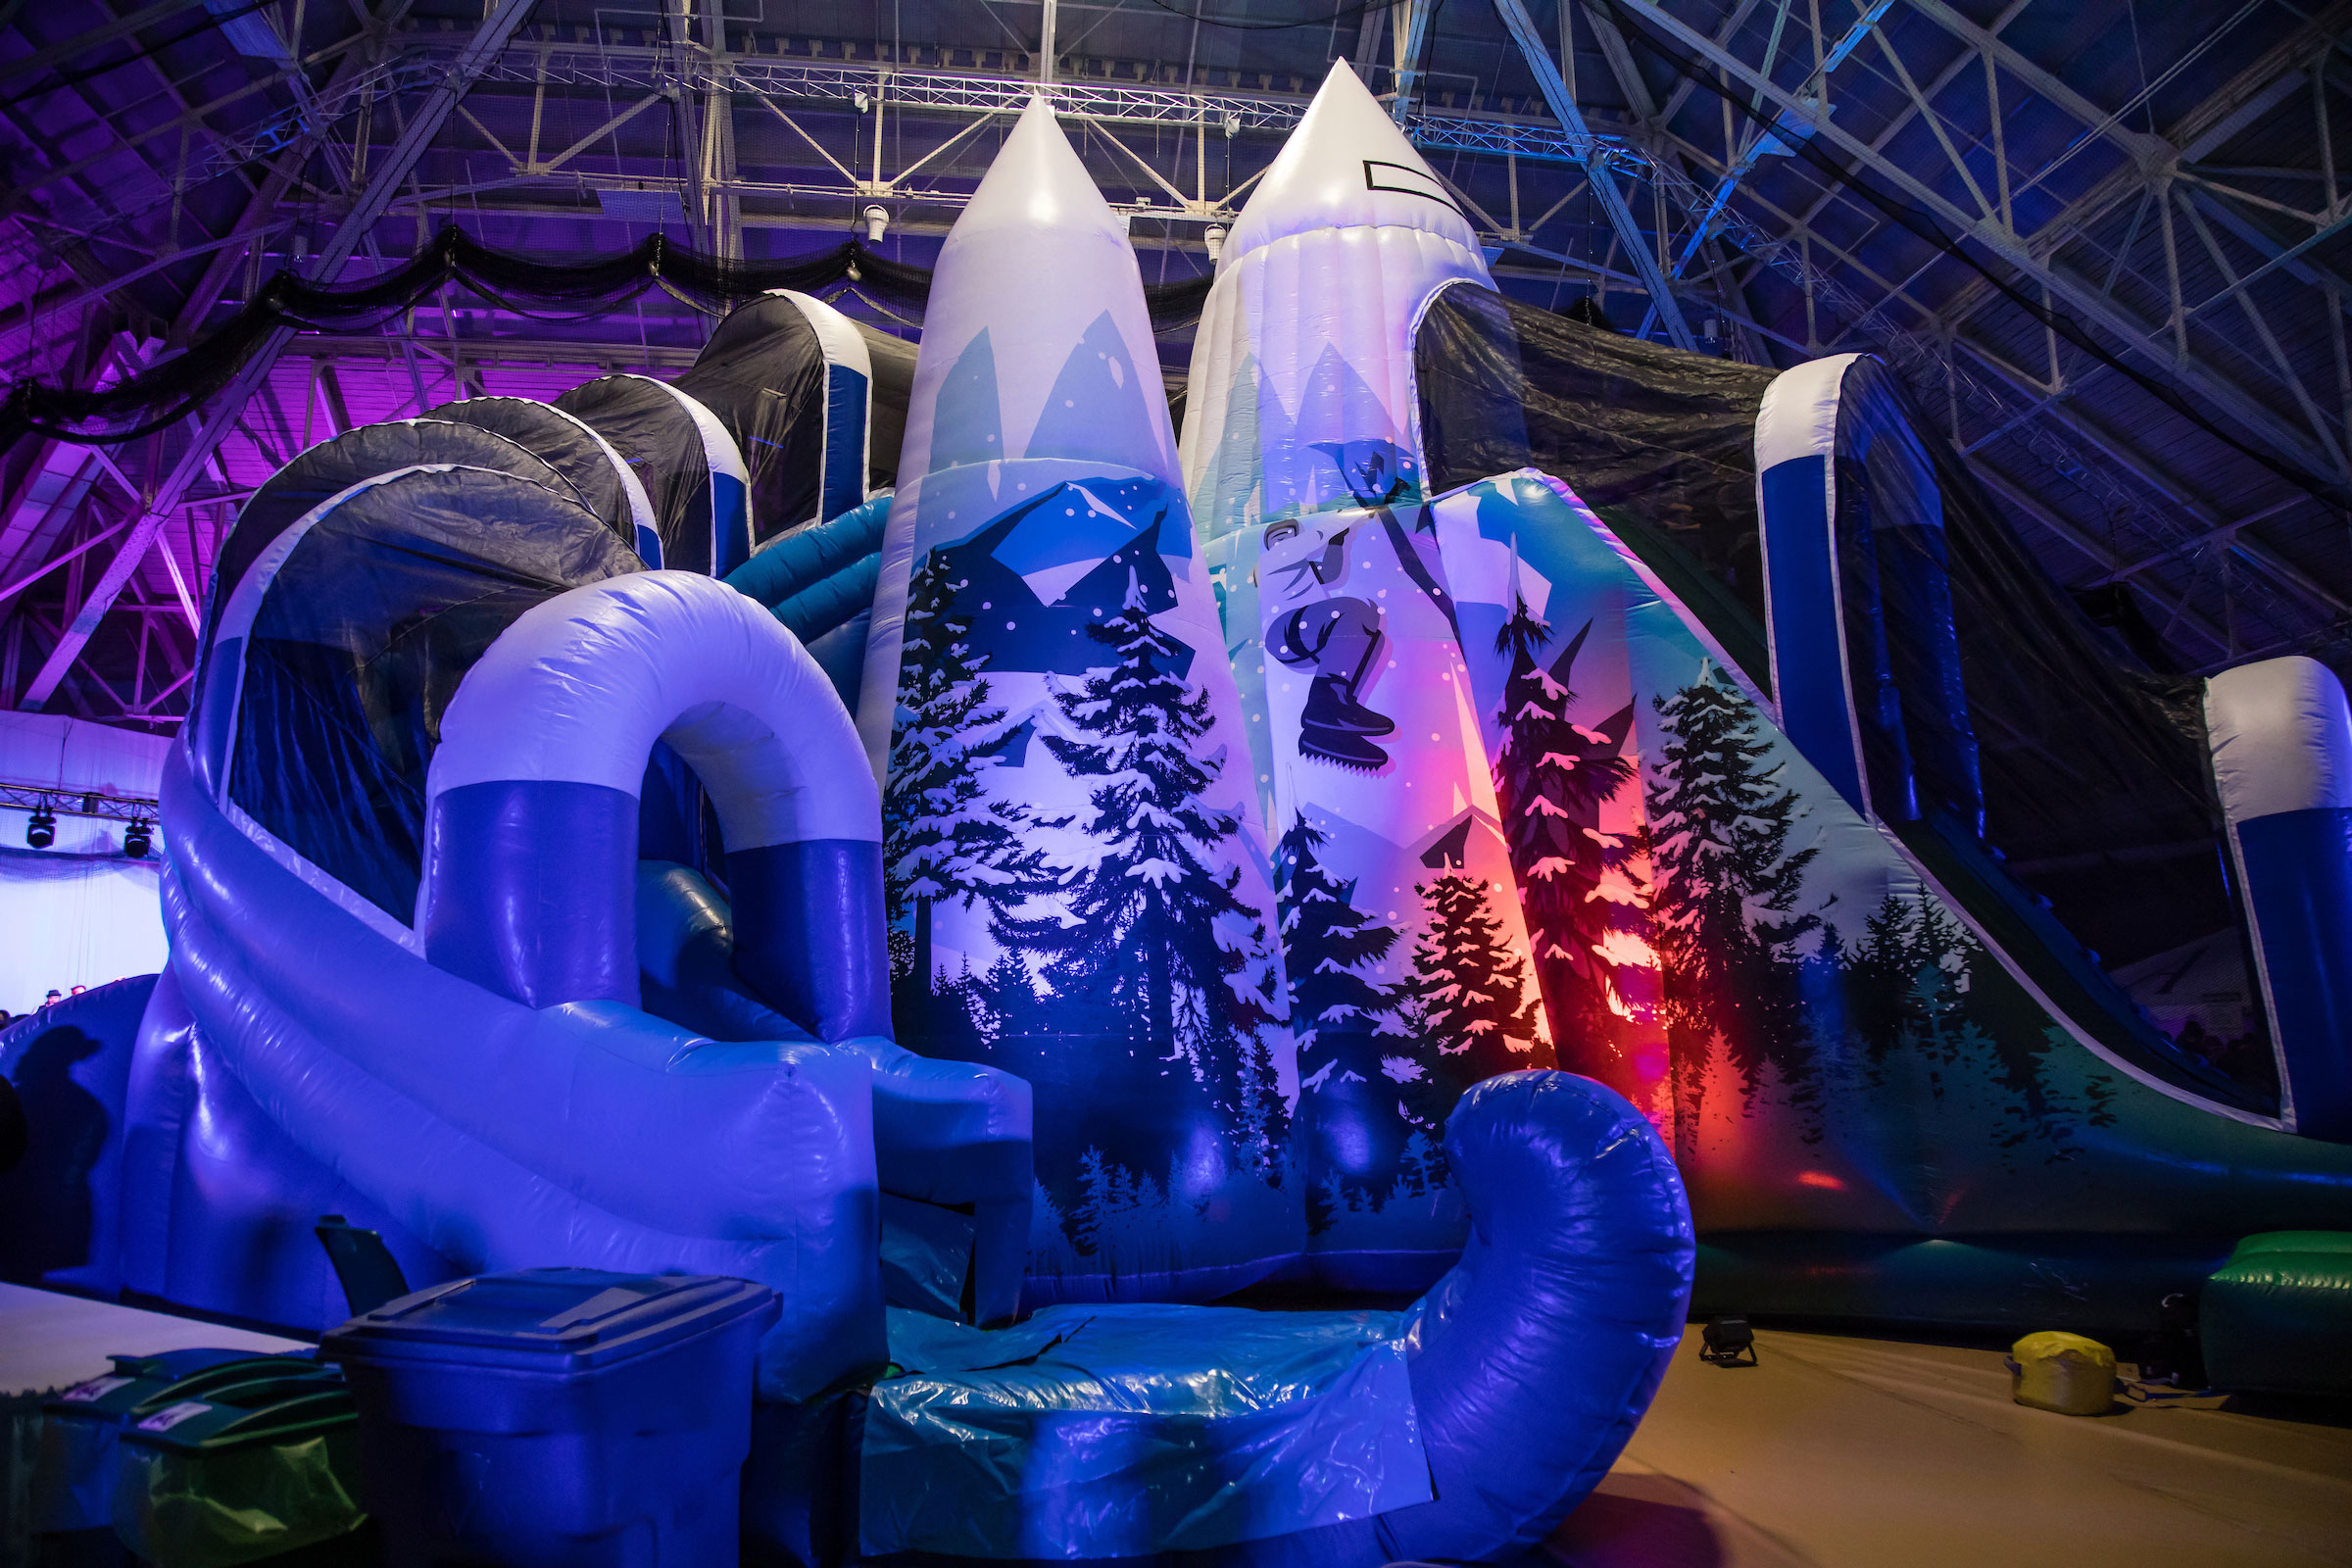 The inflatable slide at Winter Fest